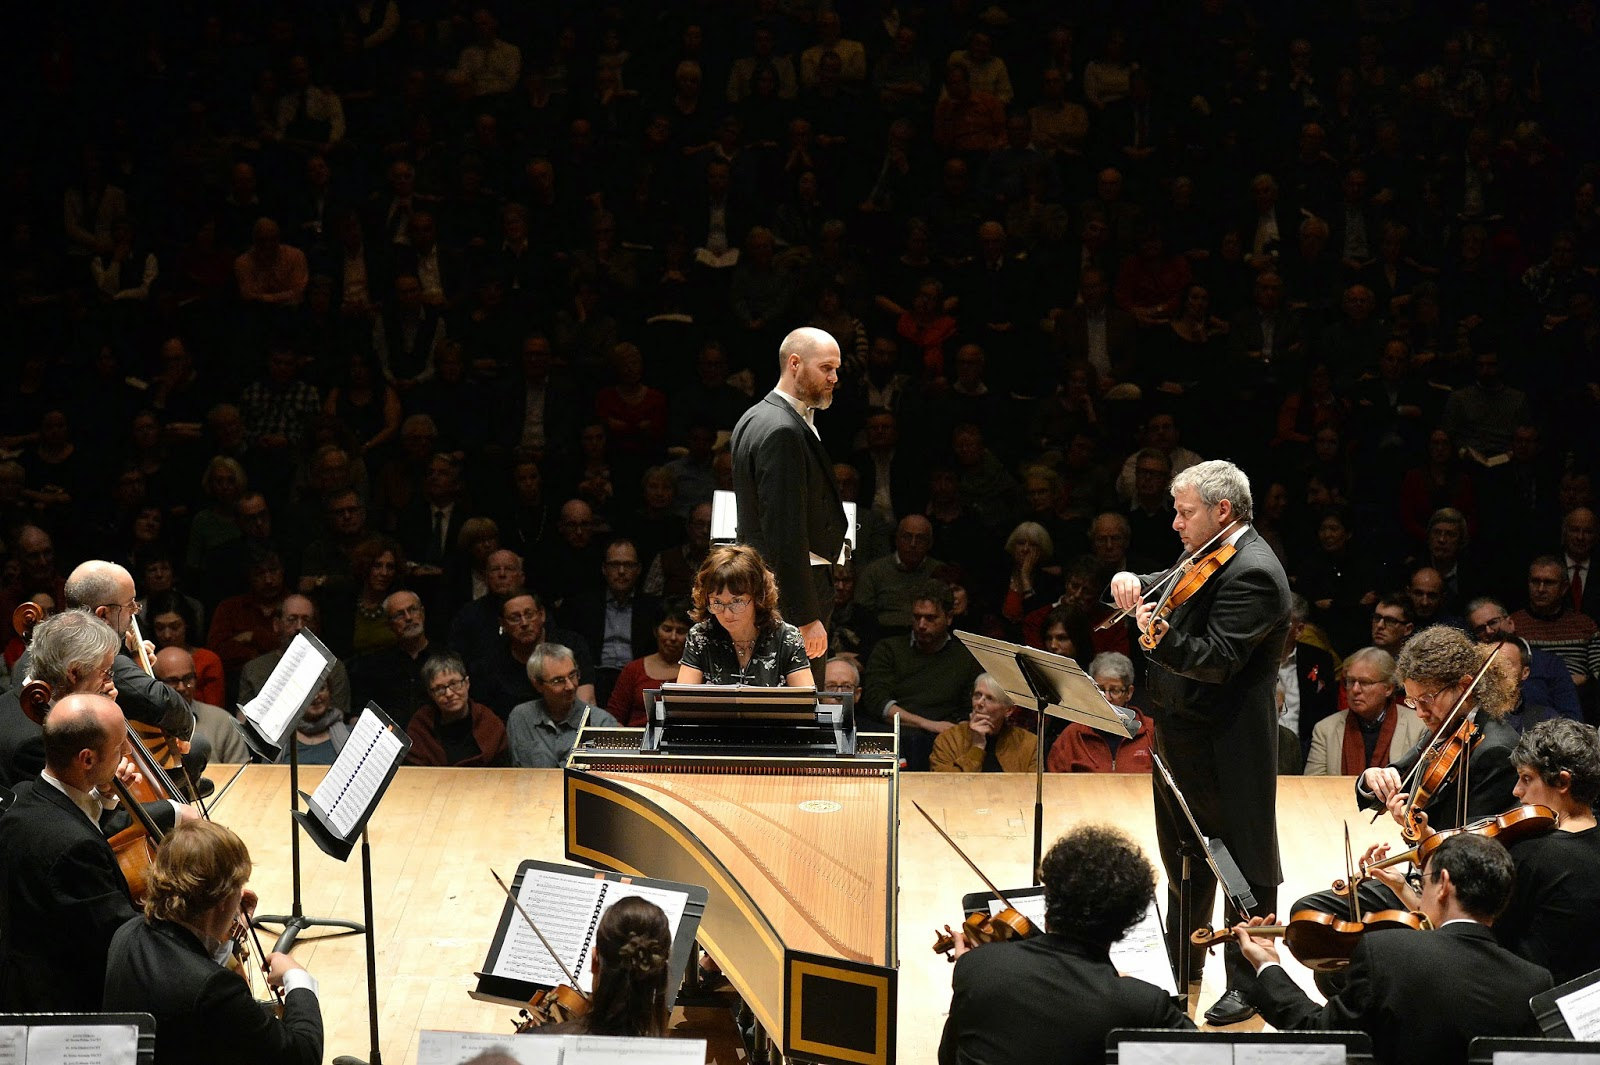 Magnus Staveland, Fabio Biondi and Europa Galante - Vivaldi's L'Oracolo in Messenia at the Barbican - photo Mark Allan/Barbican